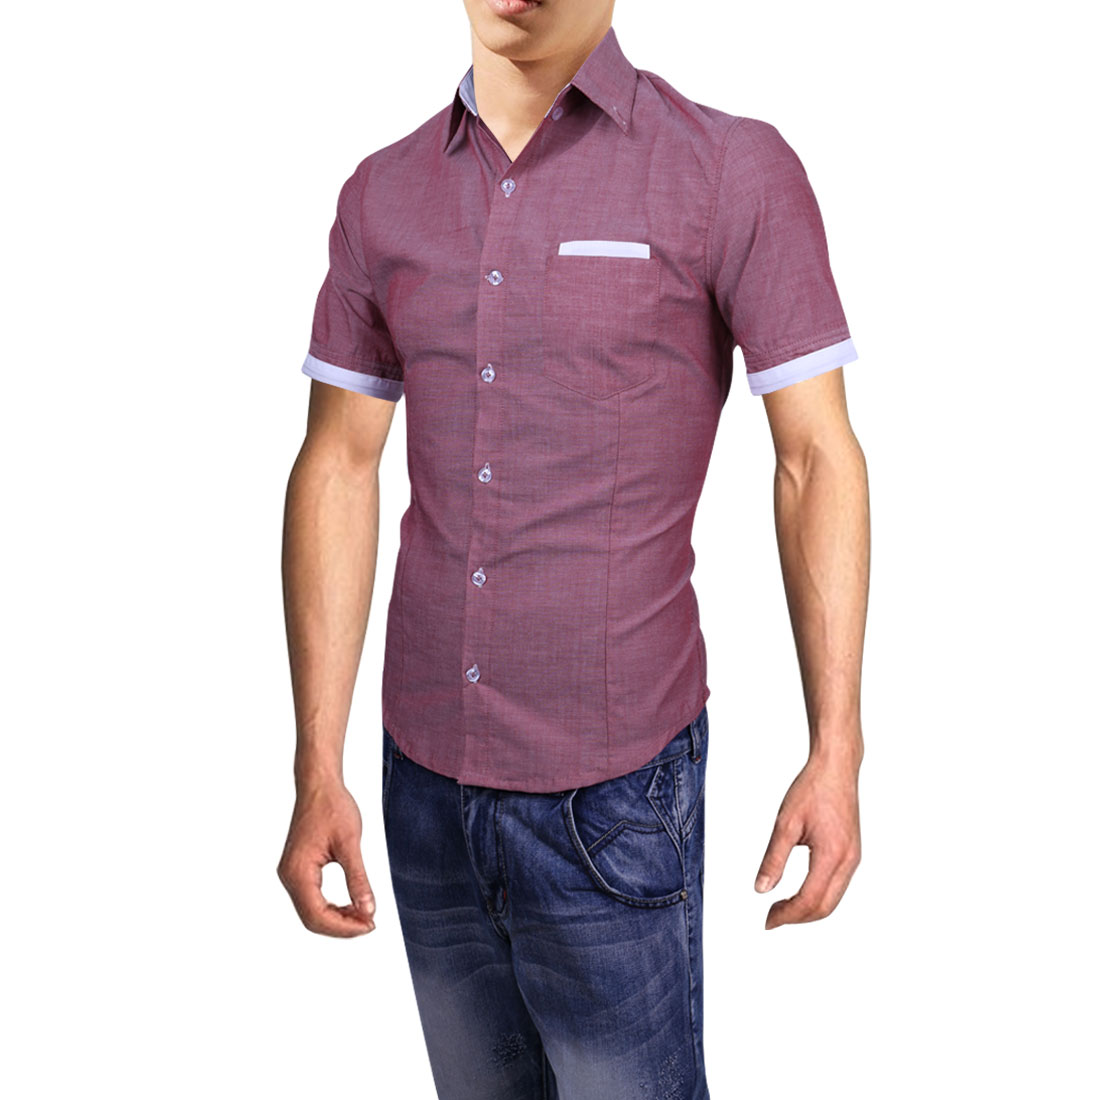 Mens New Style Chest Patch Pocket Design Light Burgundy Shirt S